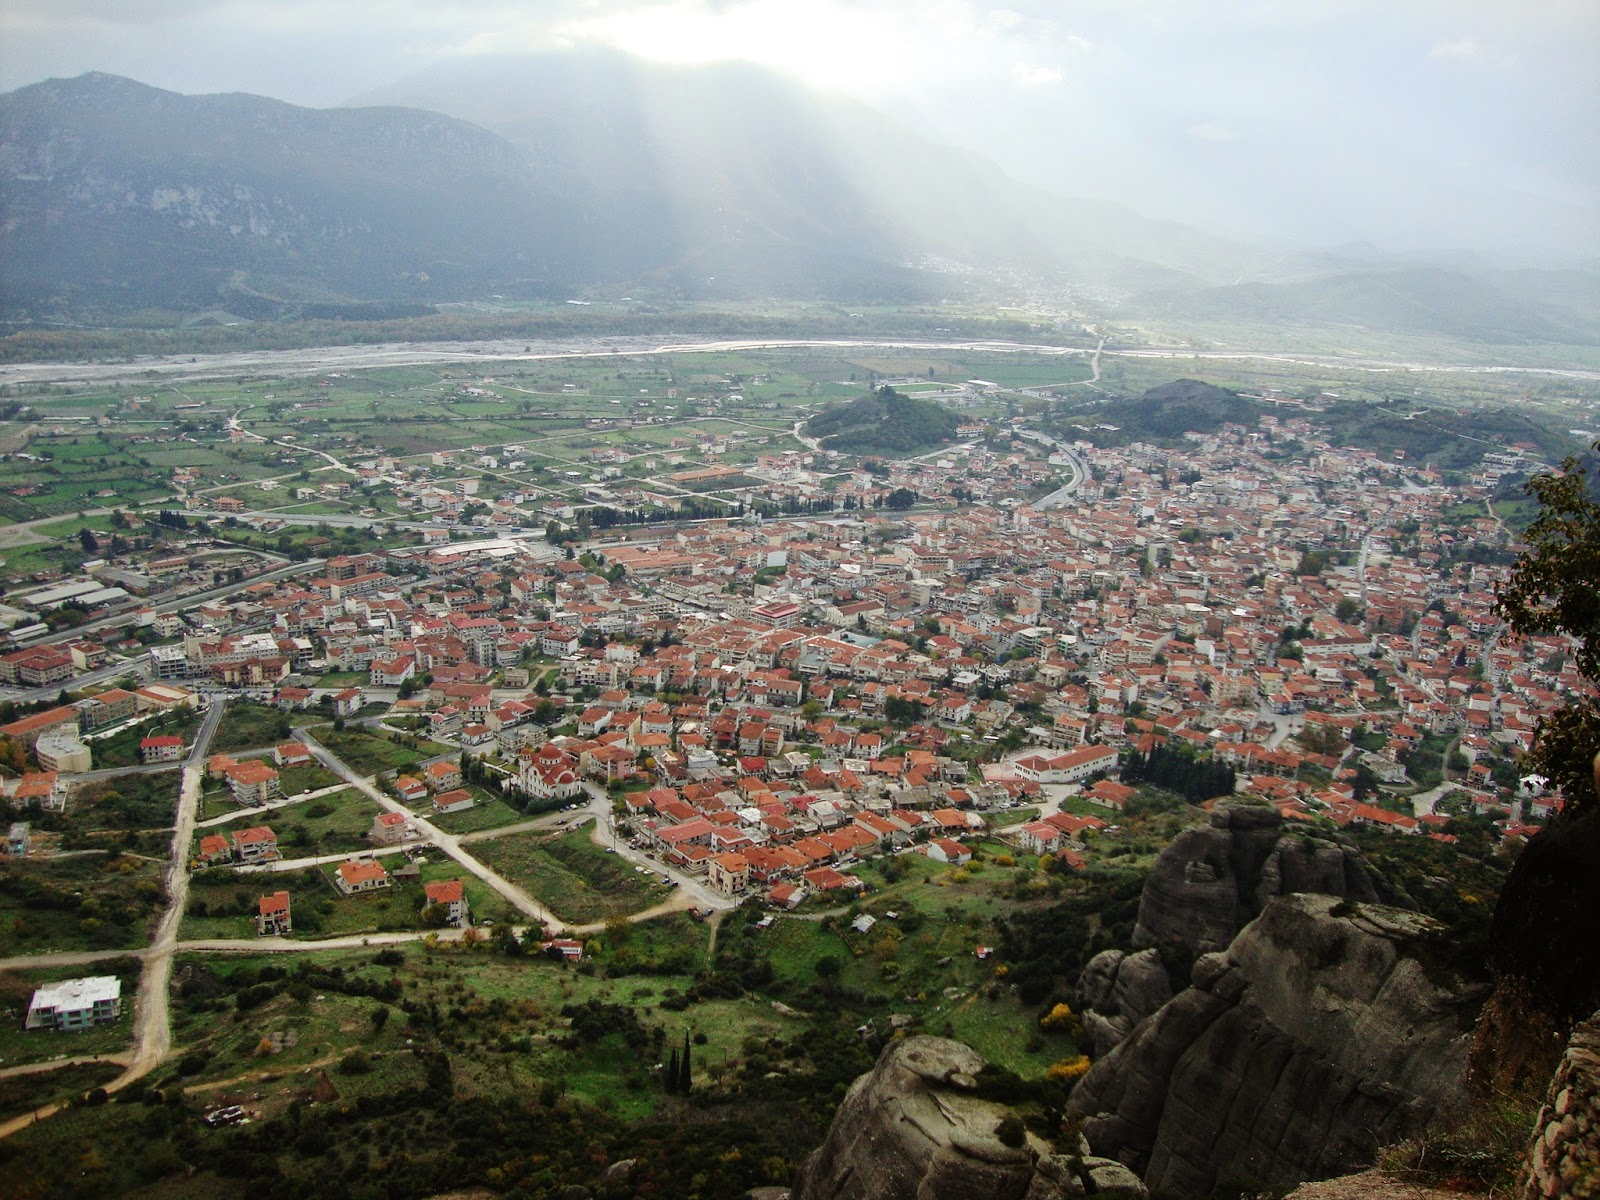 bijuleni, Greece, travel, Meteora, Kalampaka